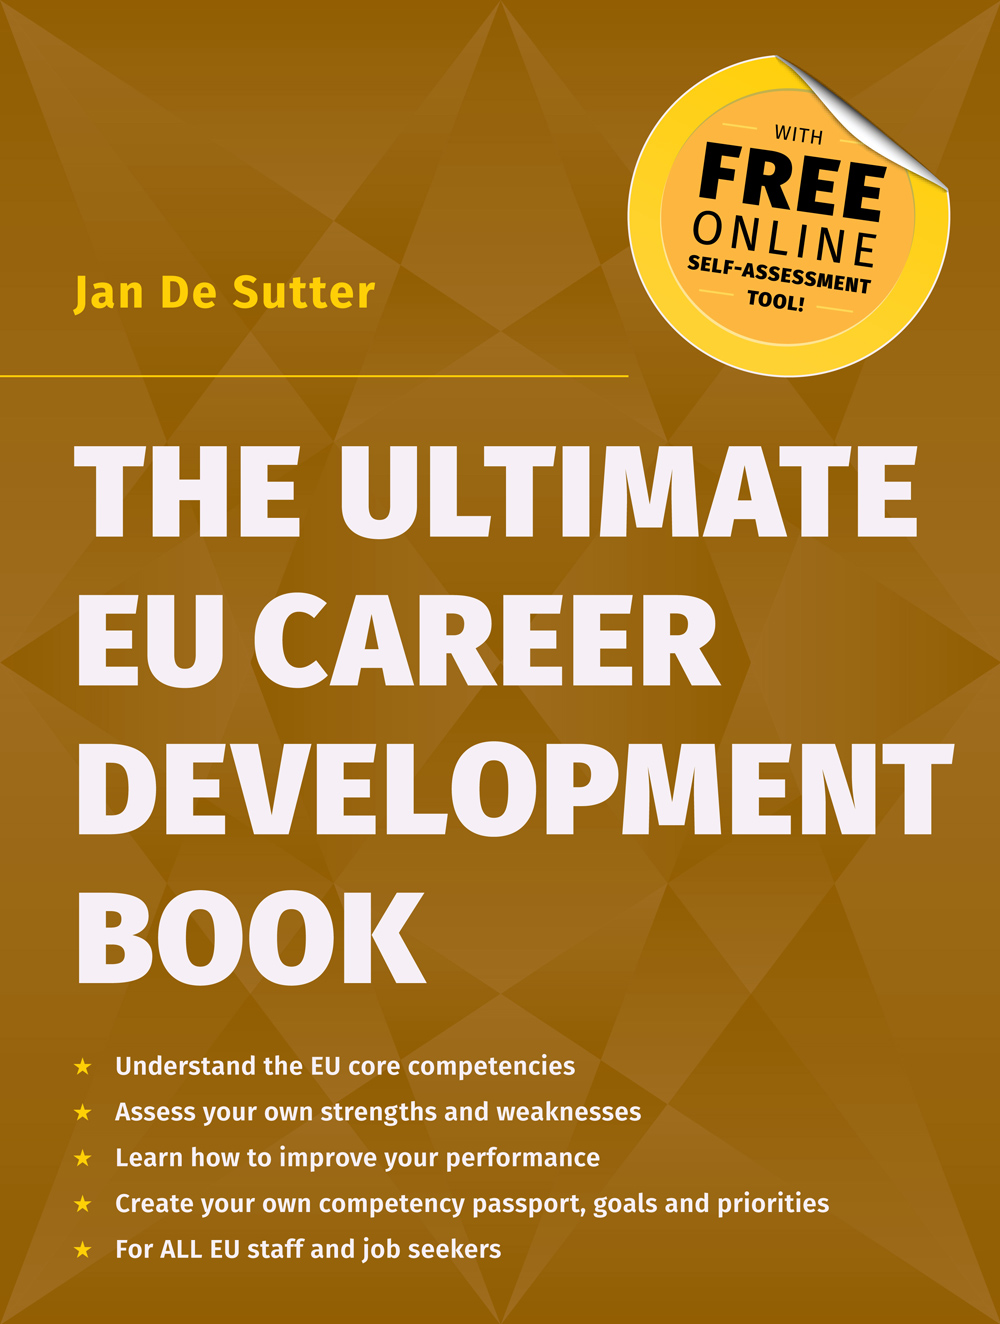 the ultimate eu career development book john harper publishing